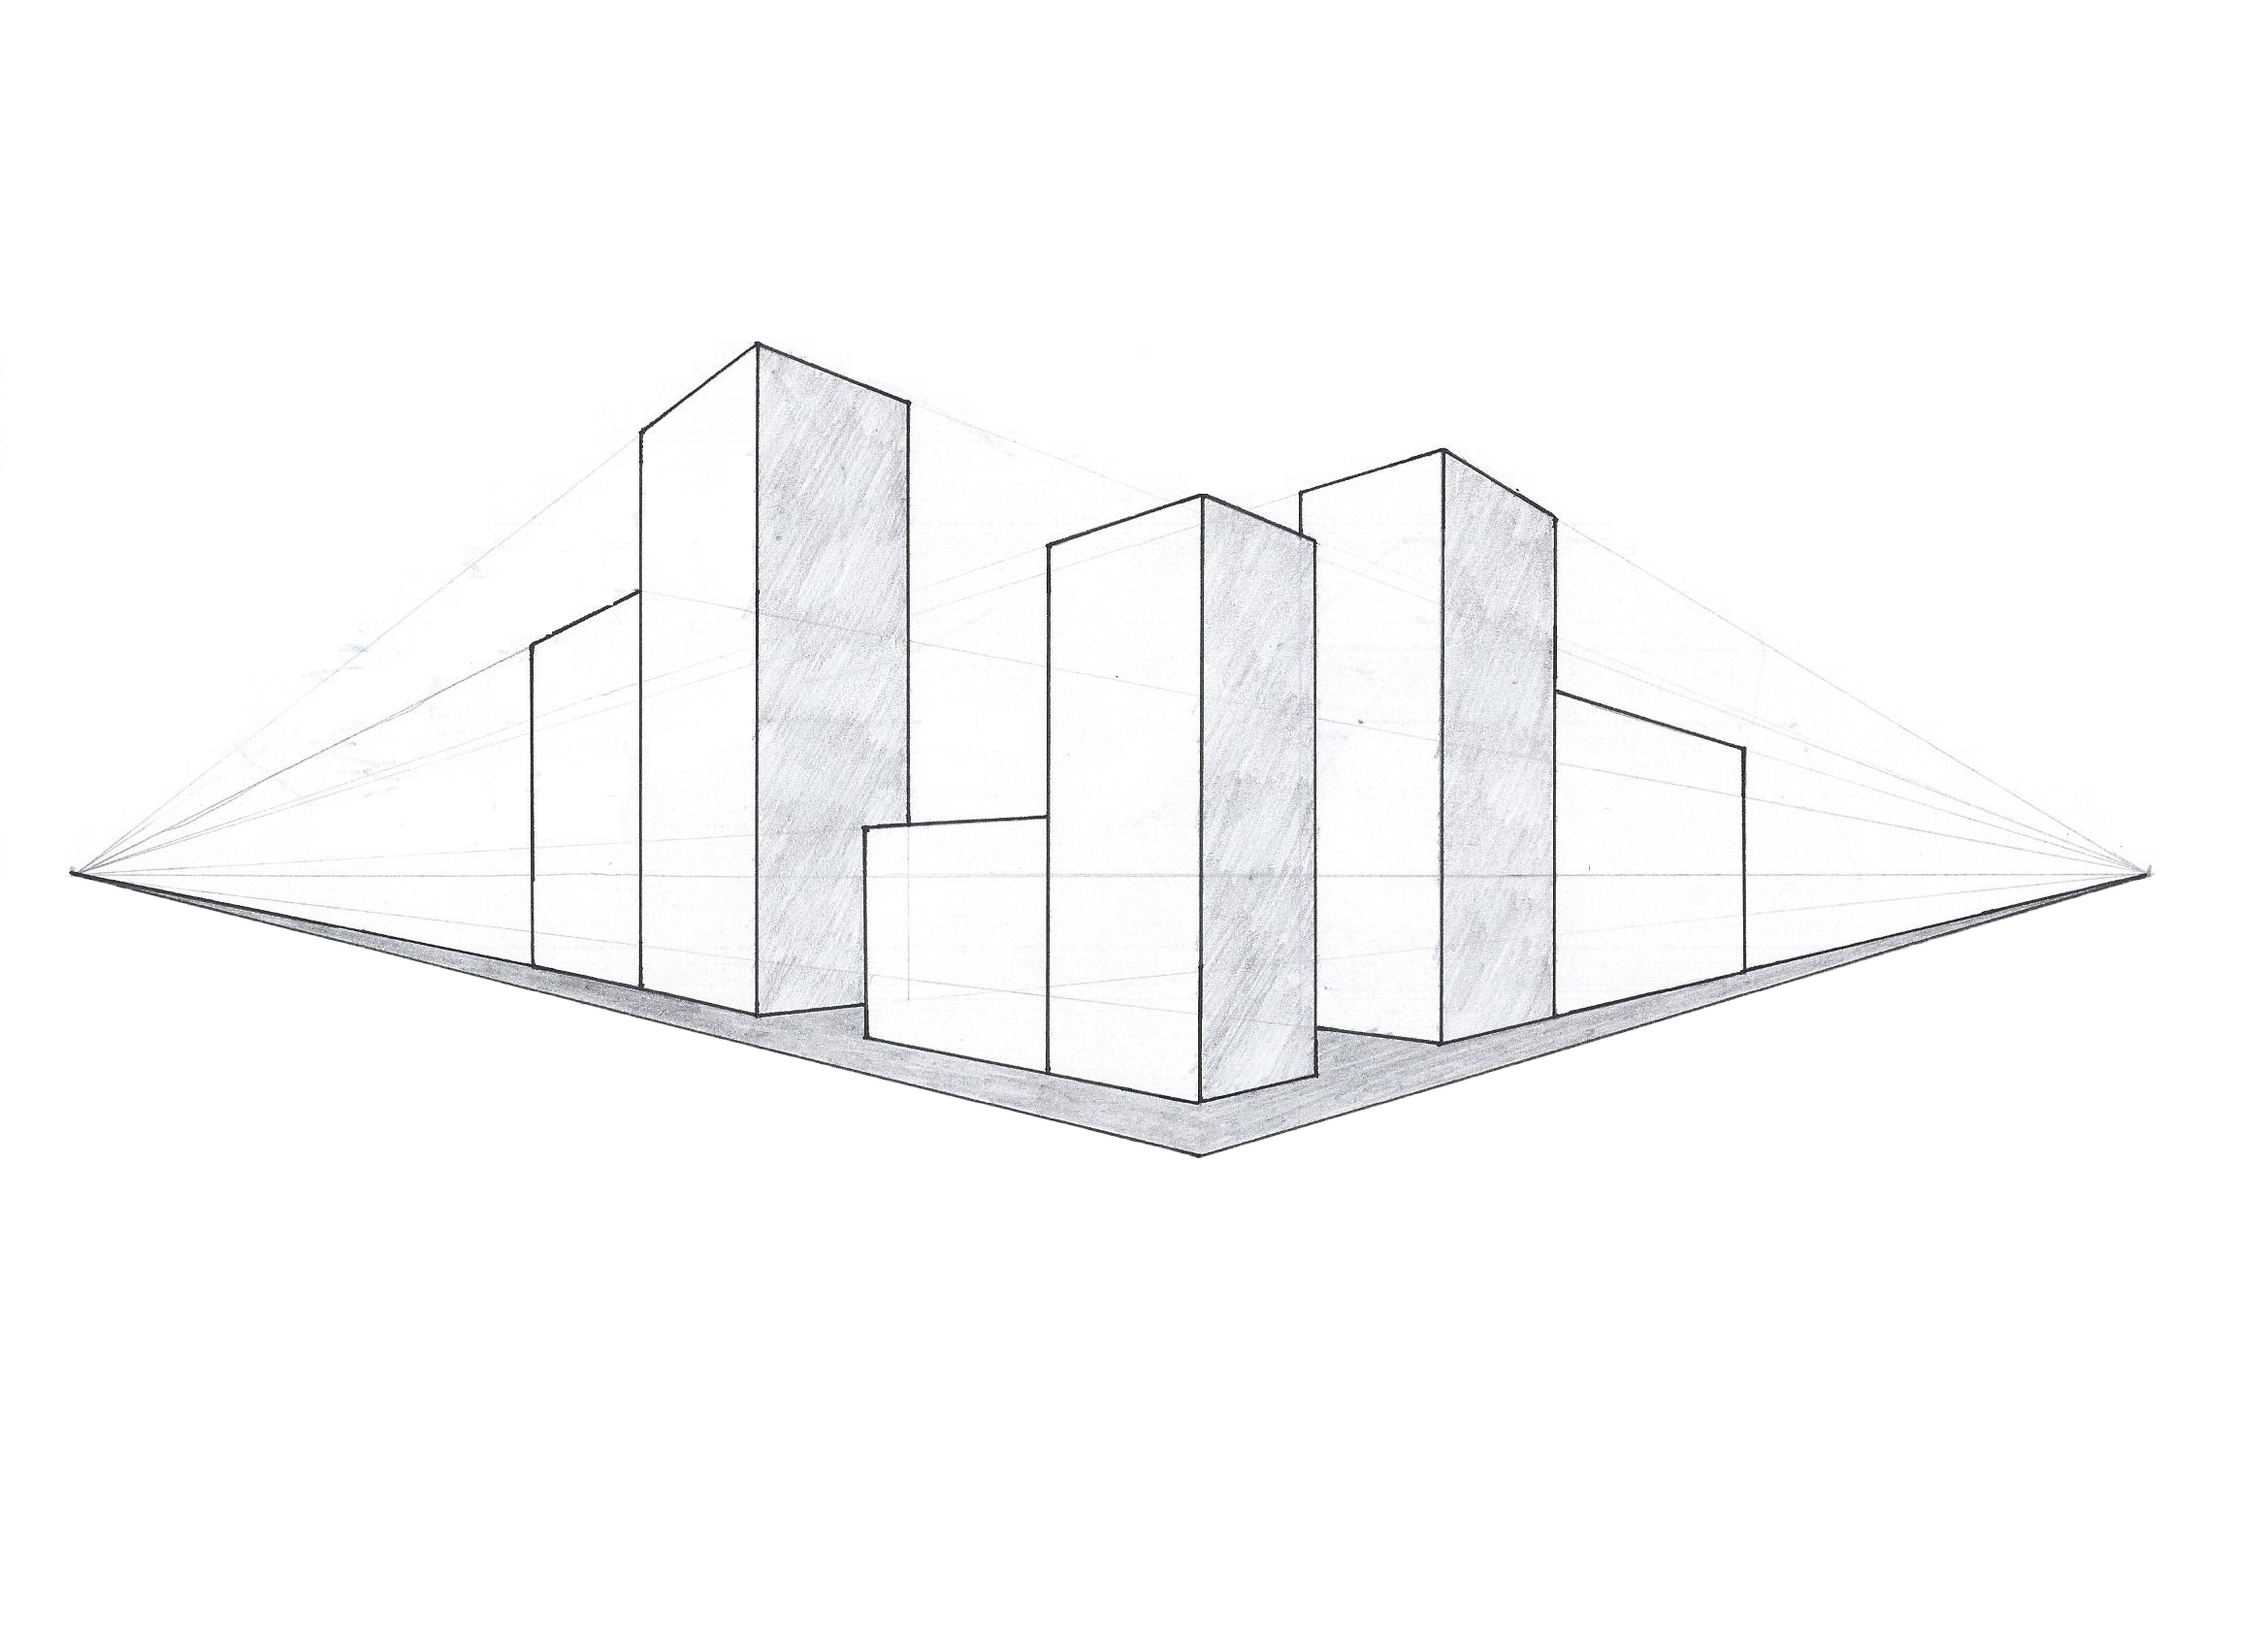 perspective study two point city front by heyan88 on deviantart